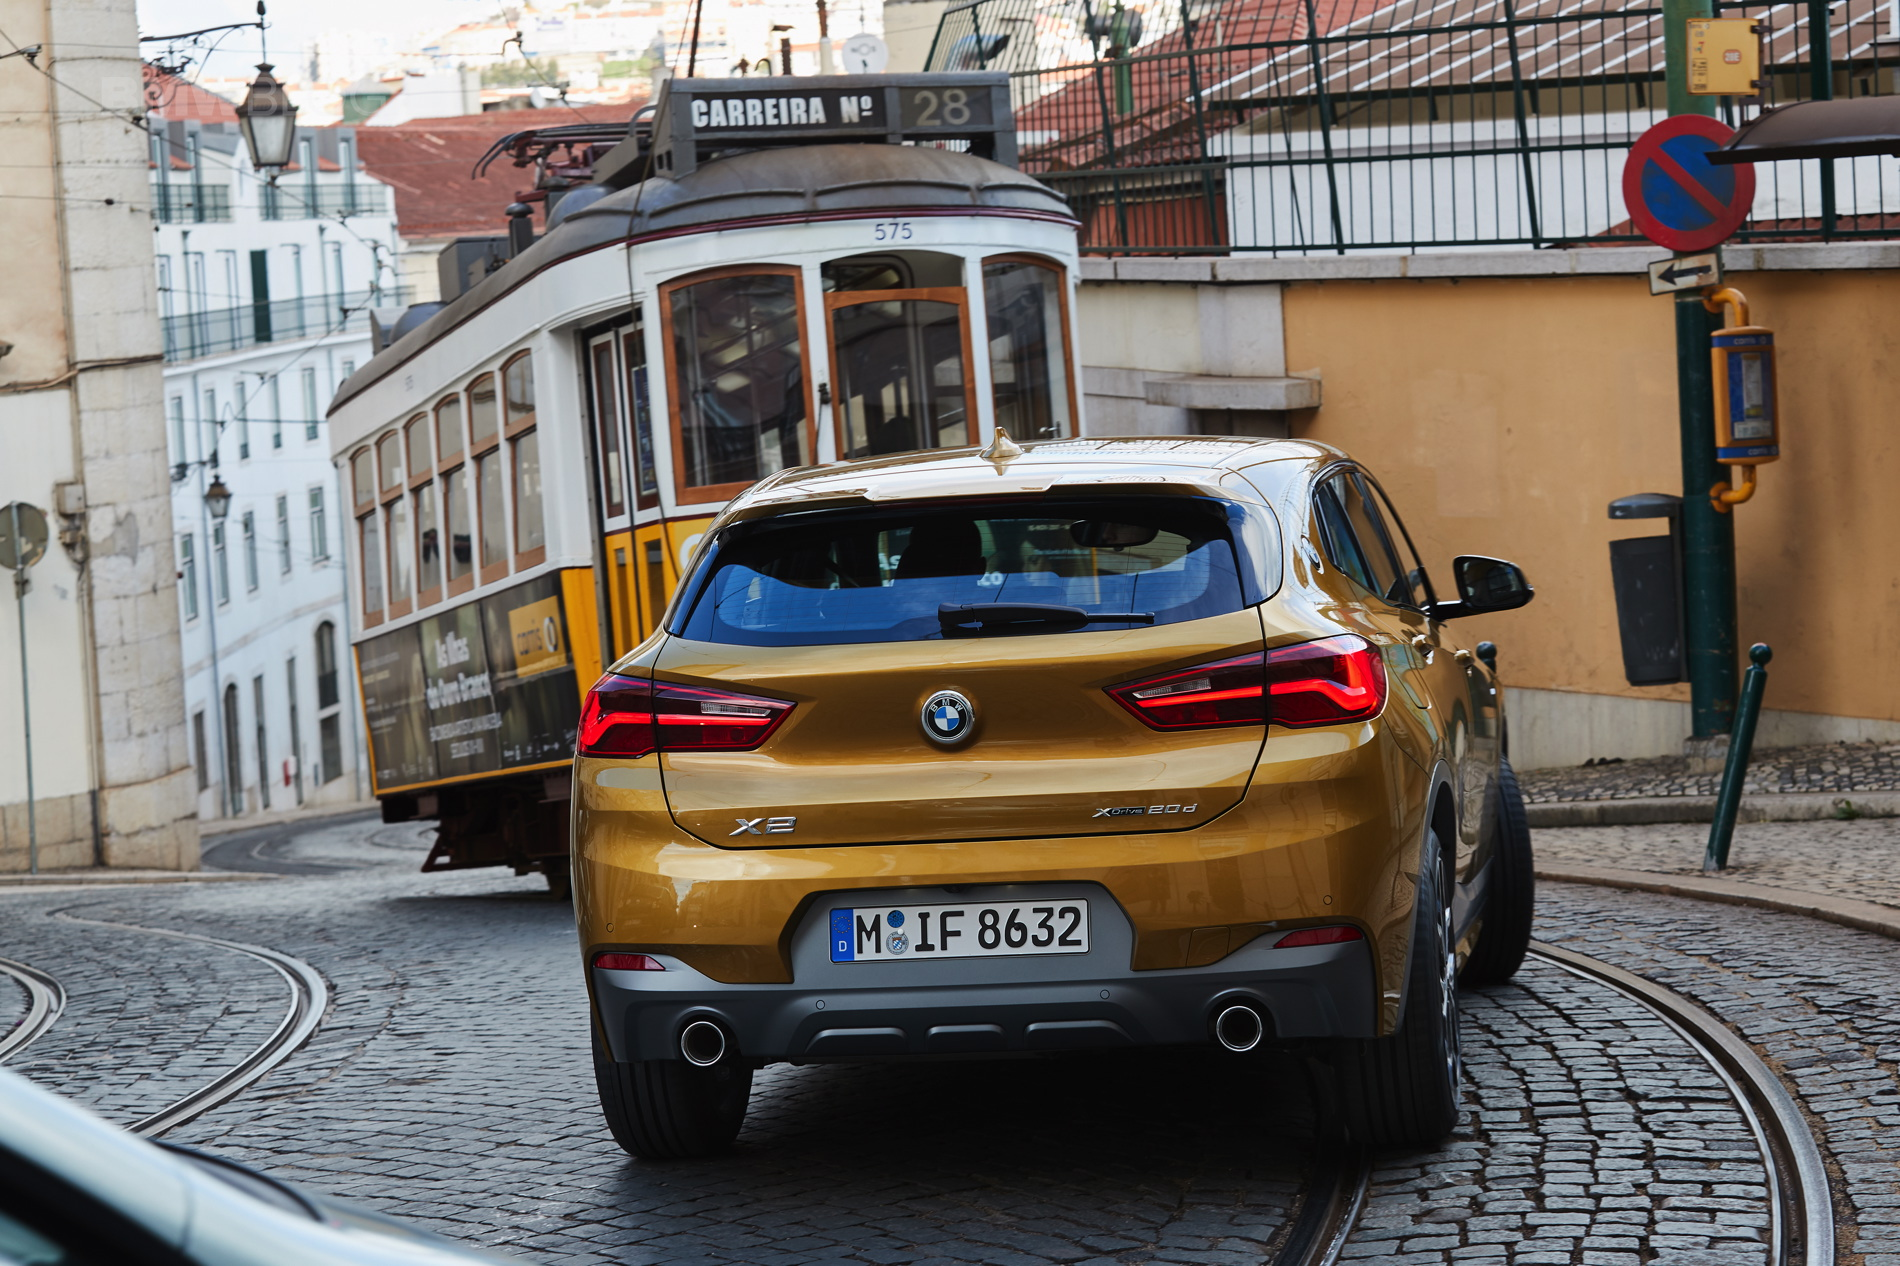 Bmw X2 New Photo Gallery From Portugal Cars And News